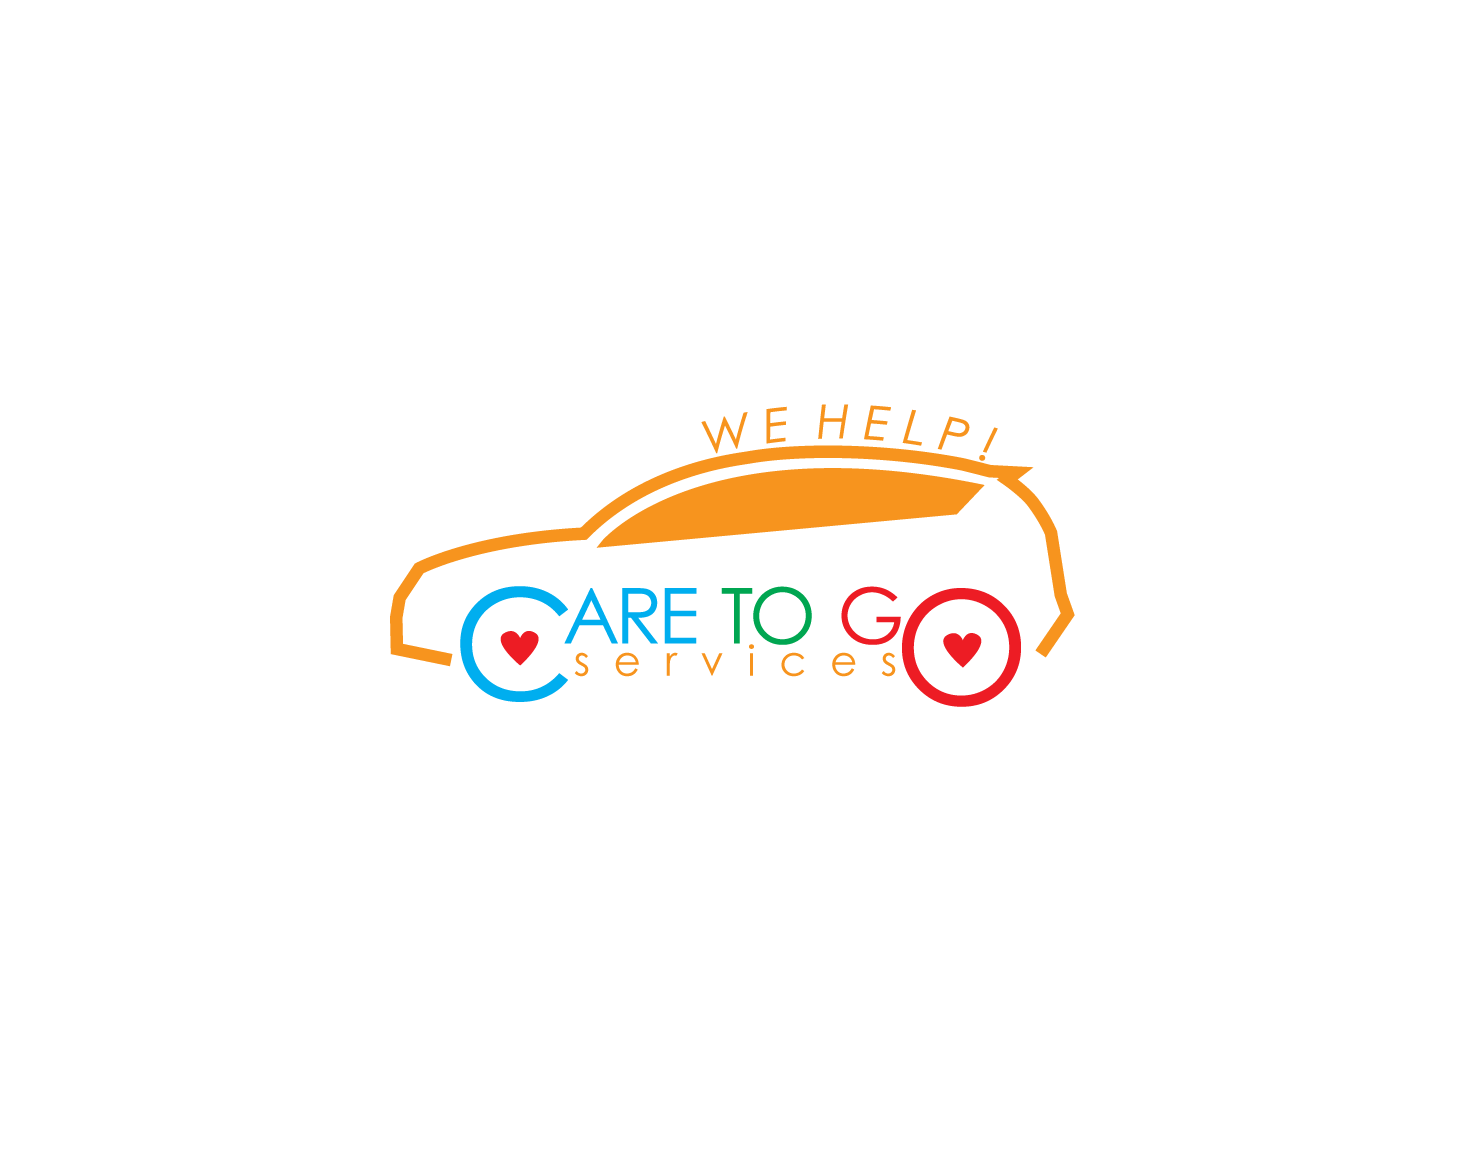 Logo Design by Roy Ferre - Entry No. 267 in the Logo Design Contest Care To Go Services.